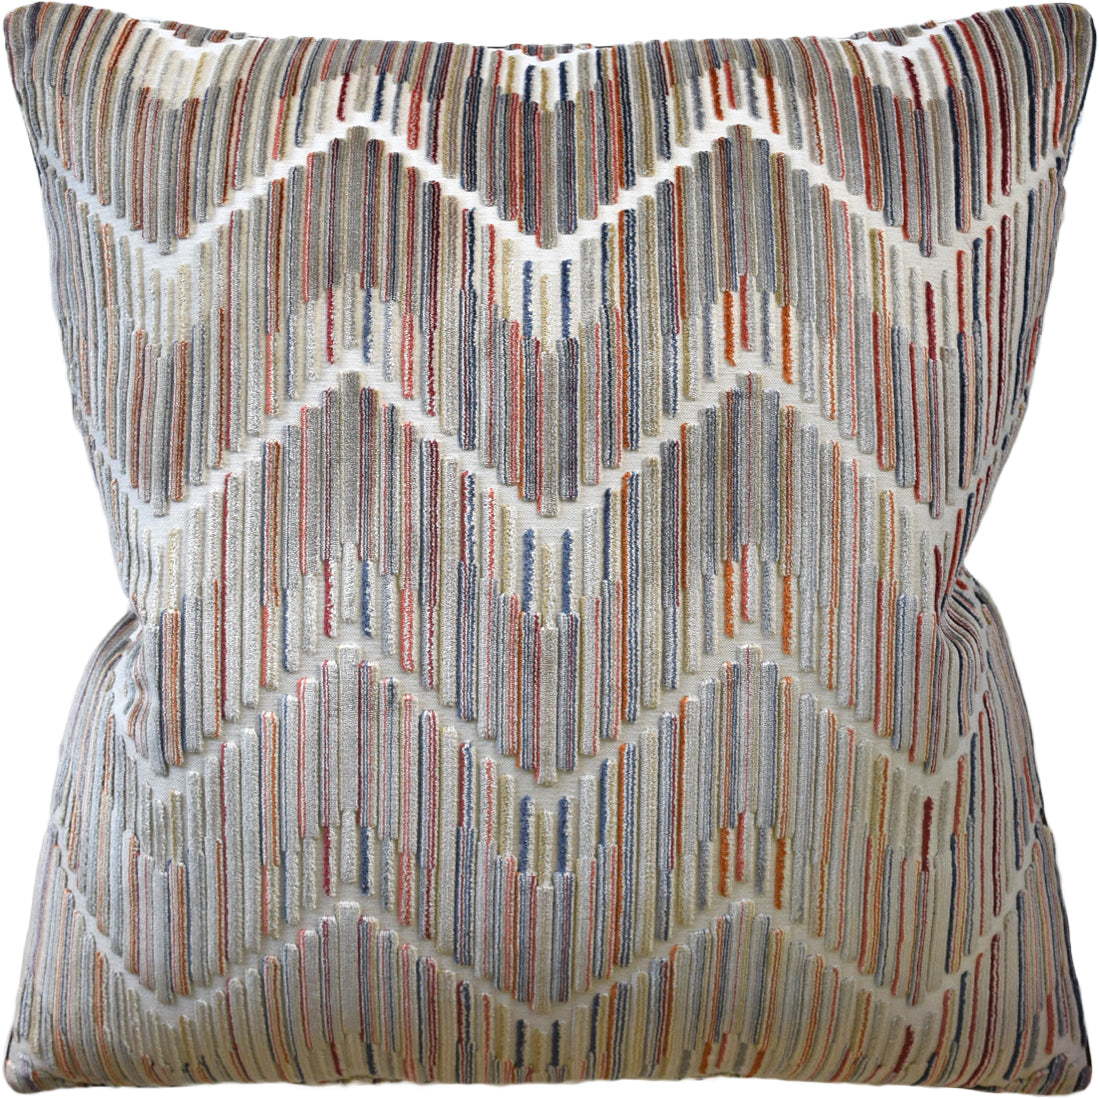 Ryan Studio Hilo Pillow in Amber